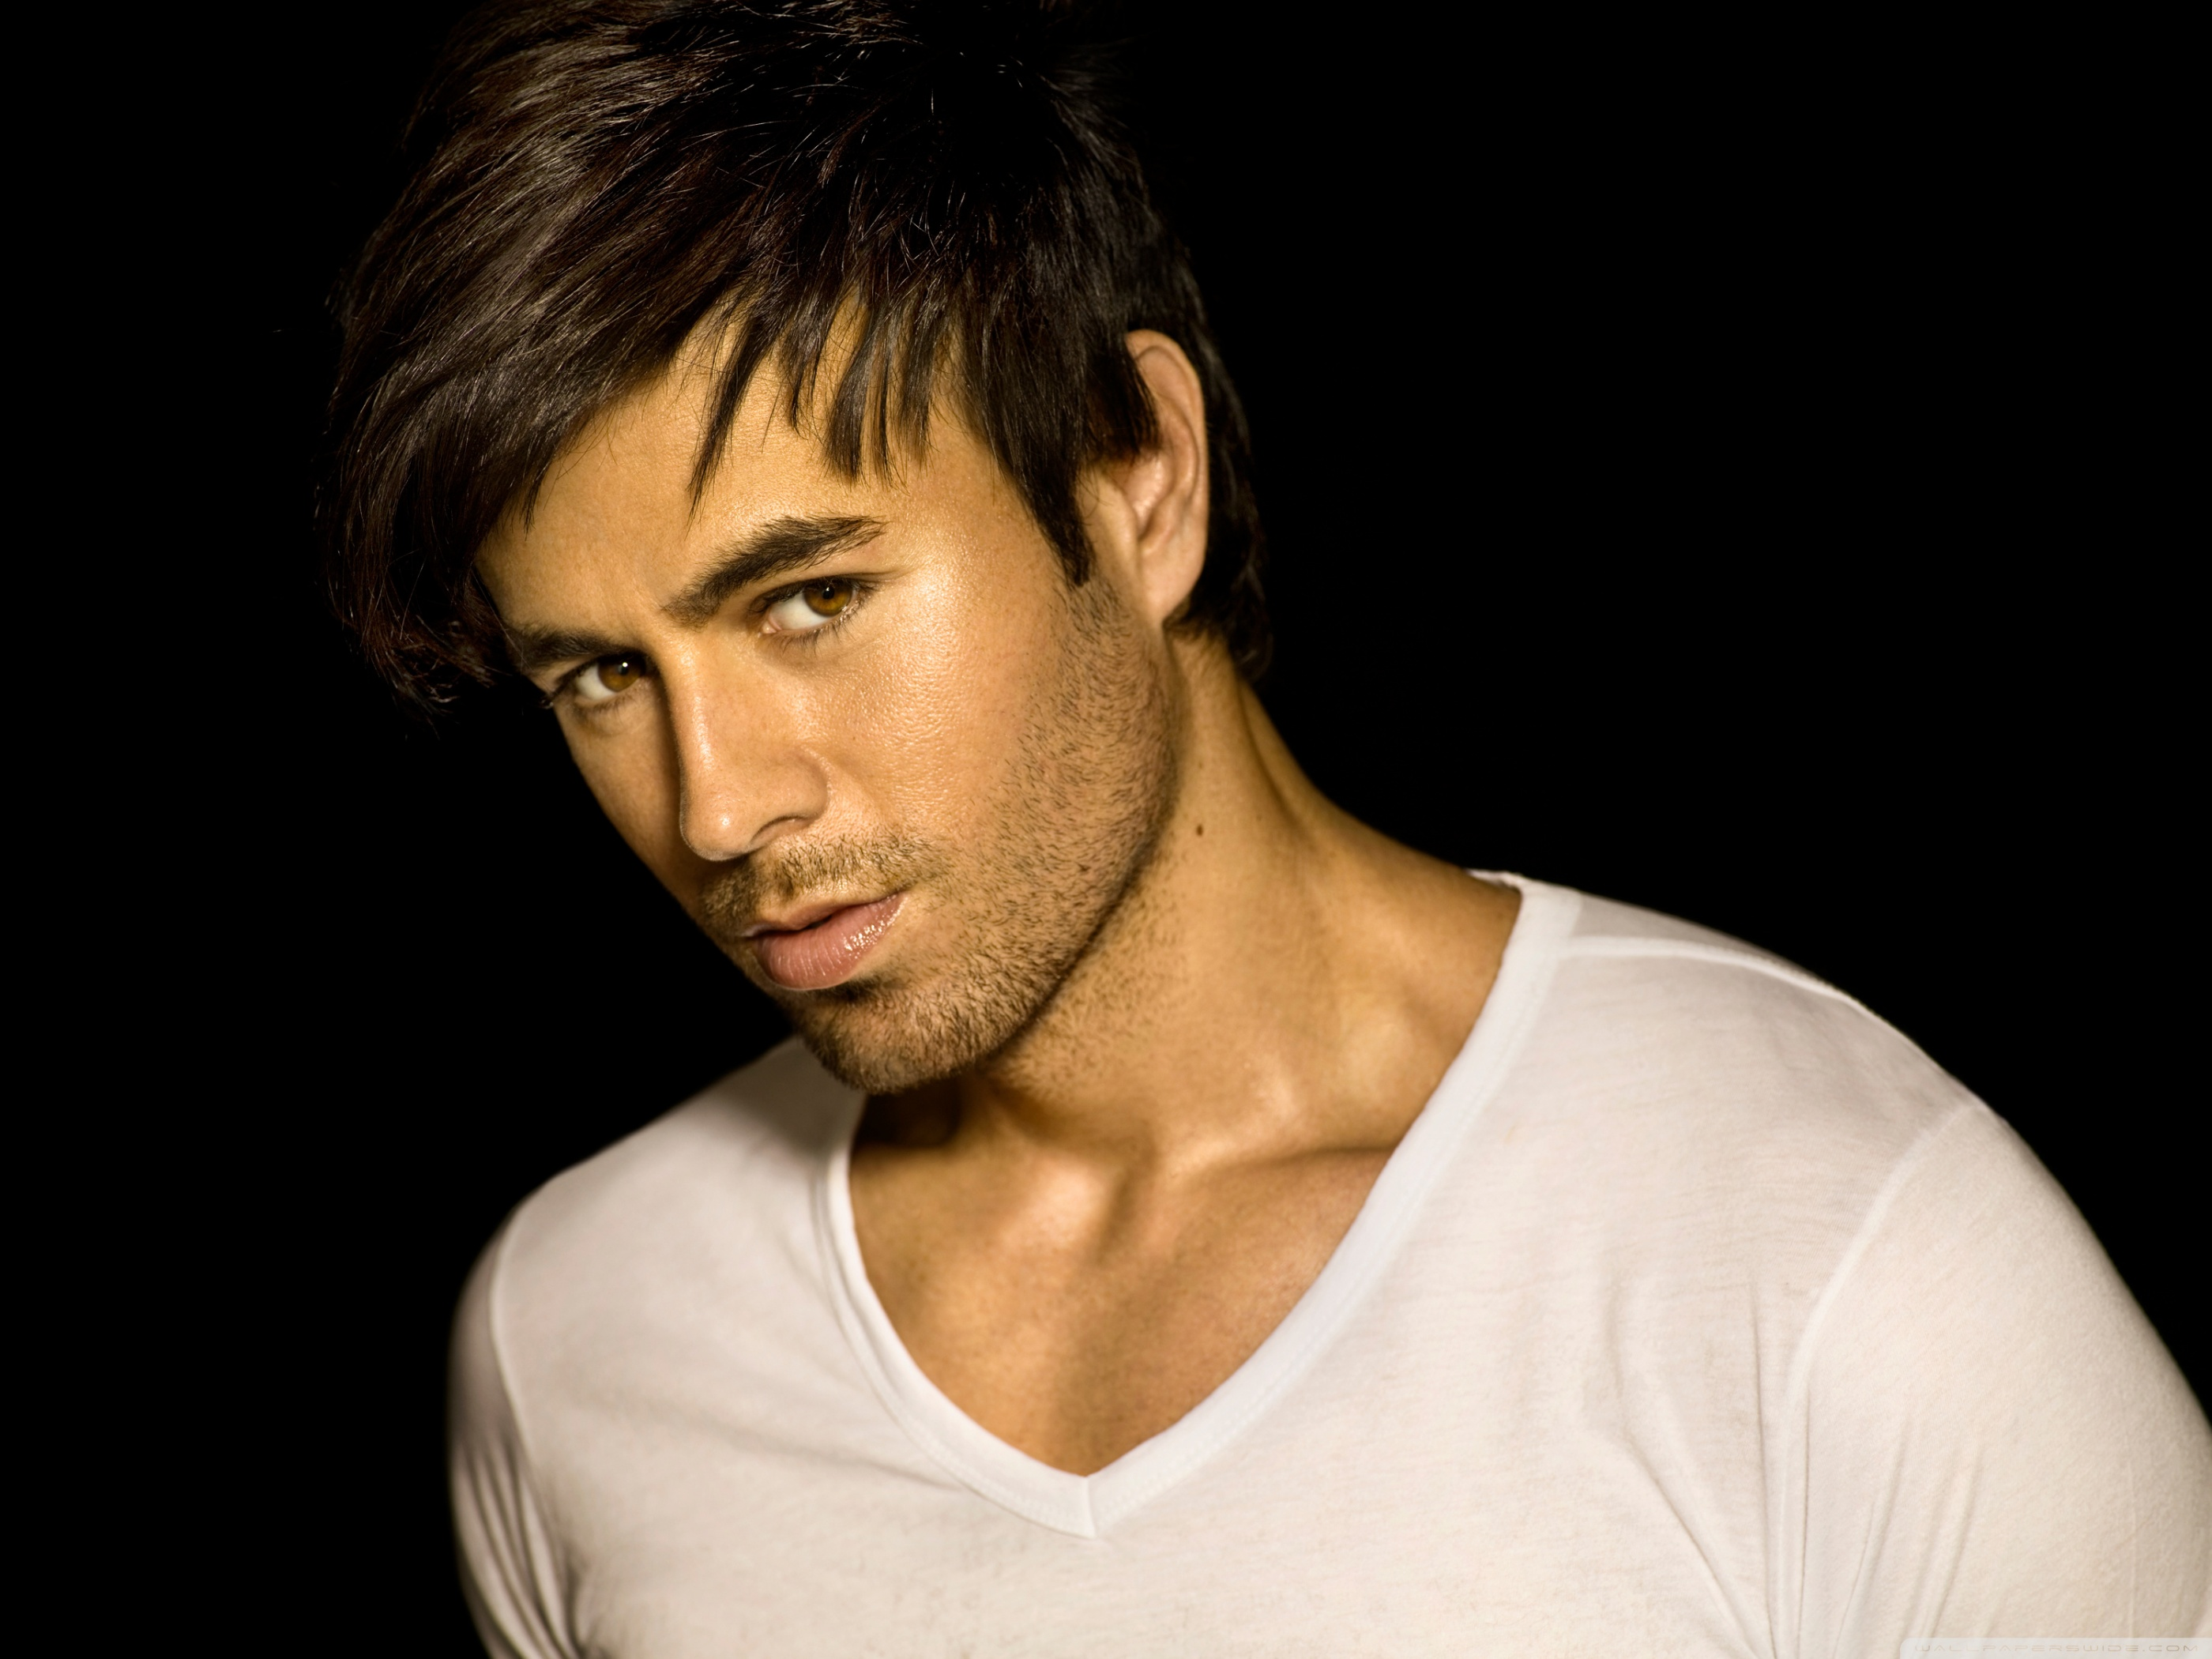 Enrique Iglesias Mobile Wallpaper